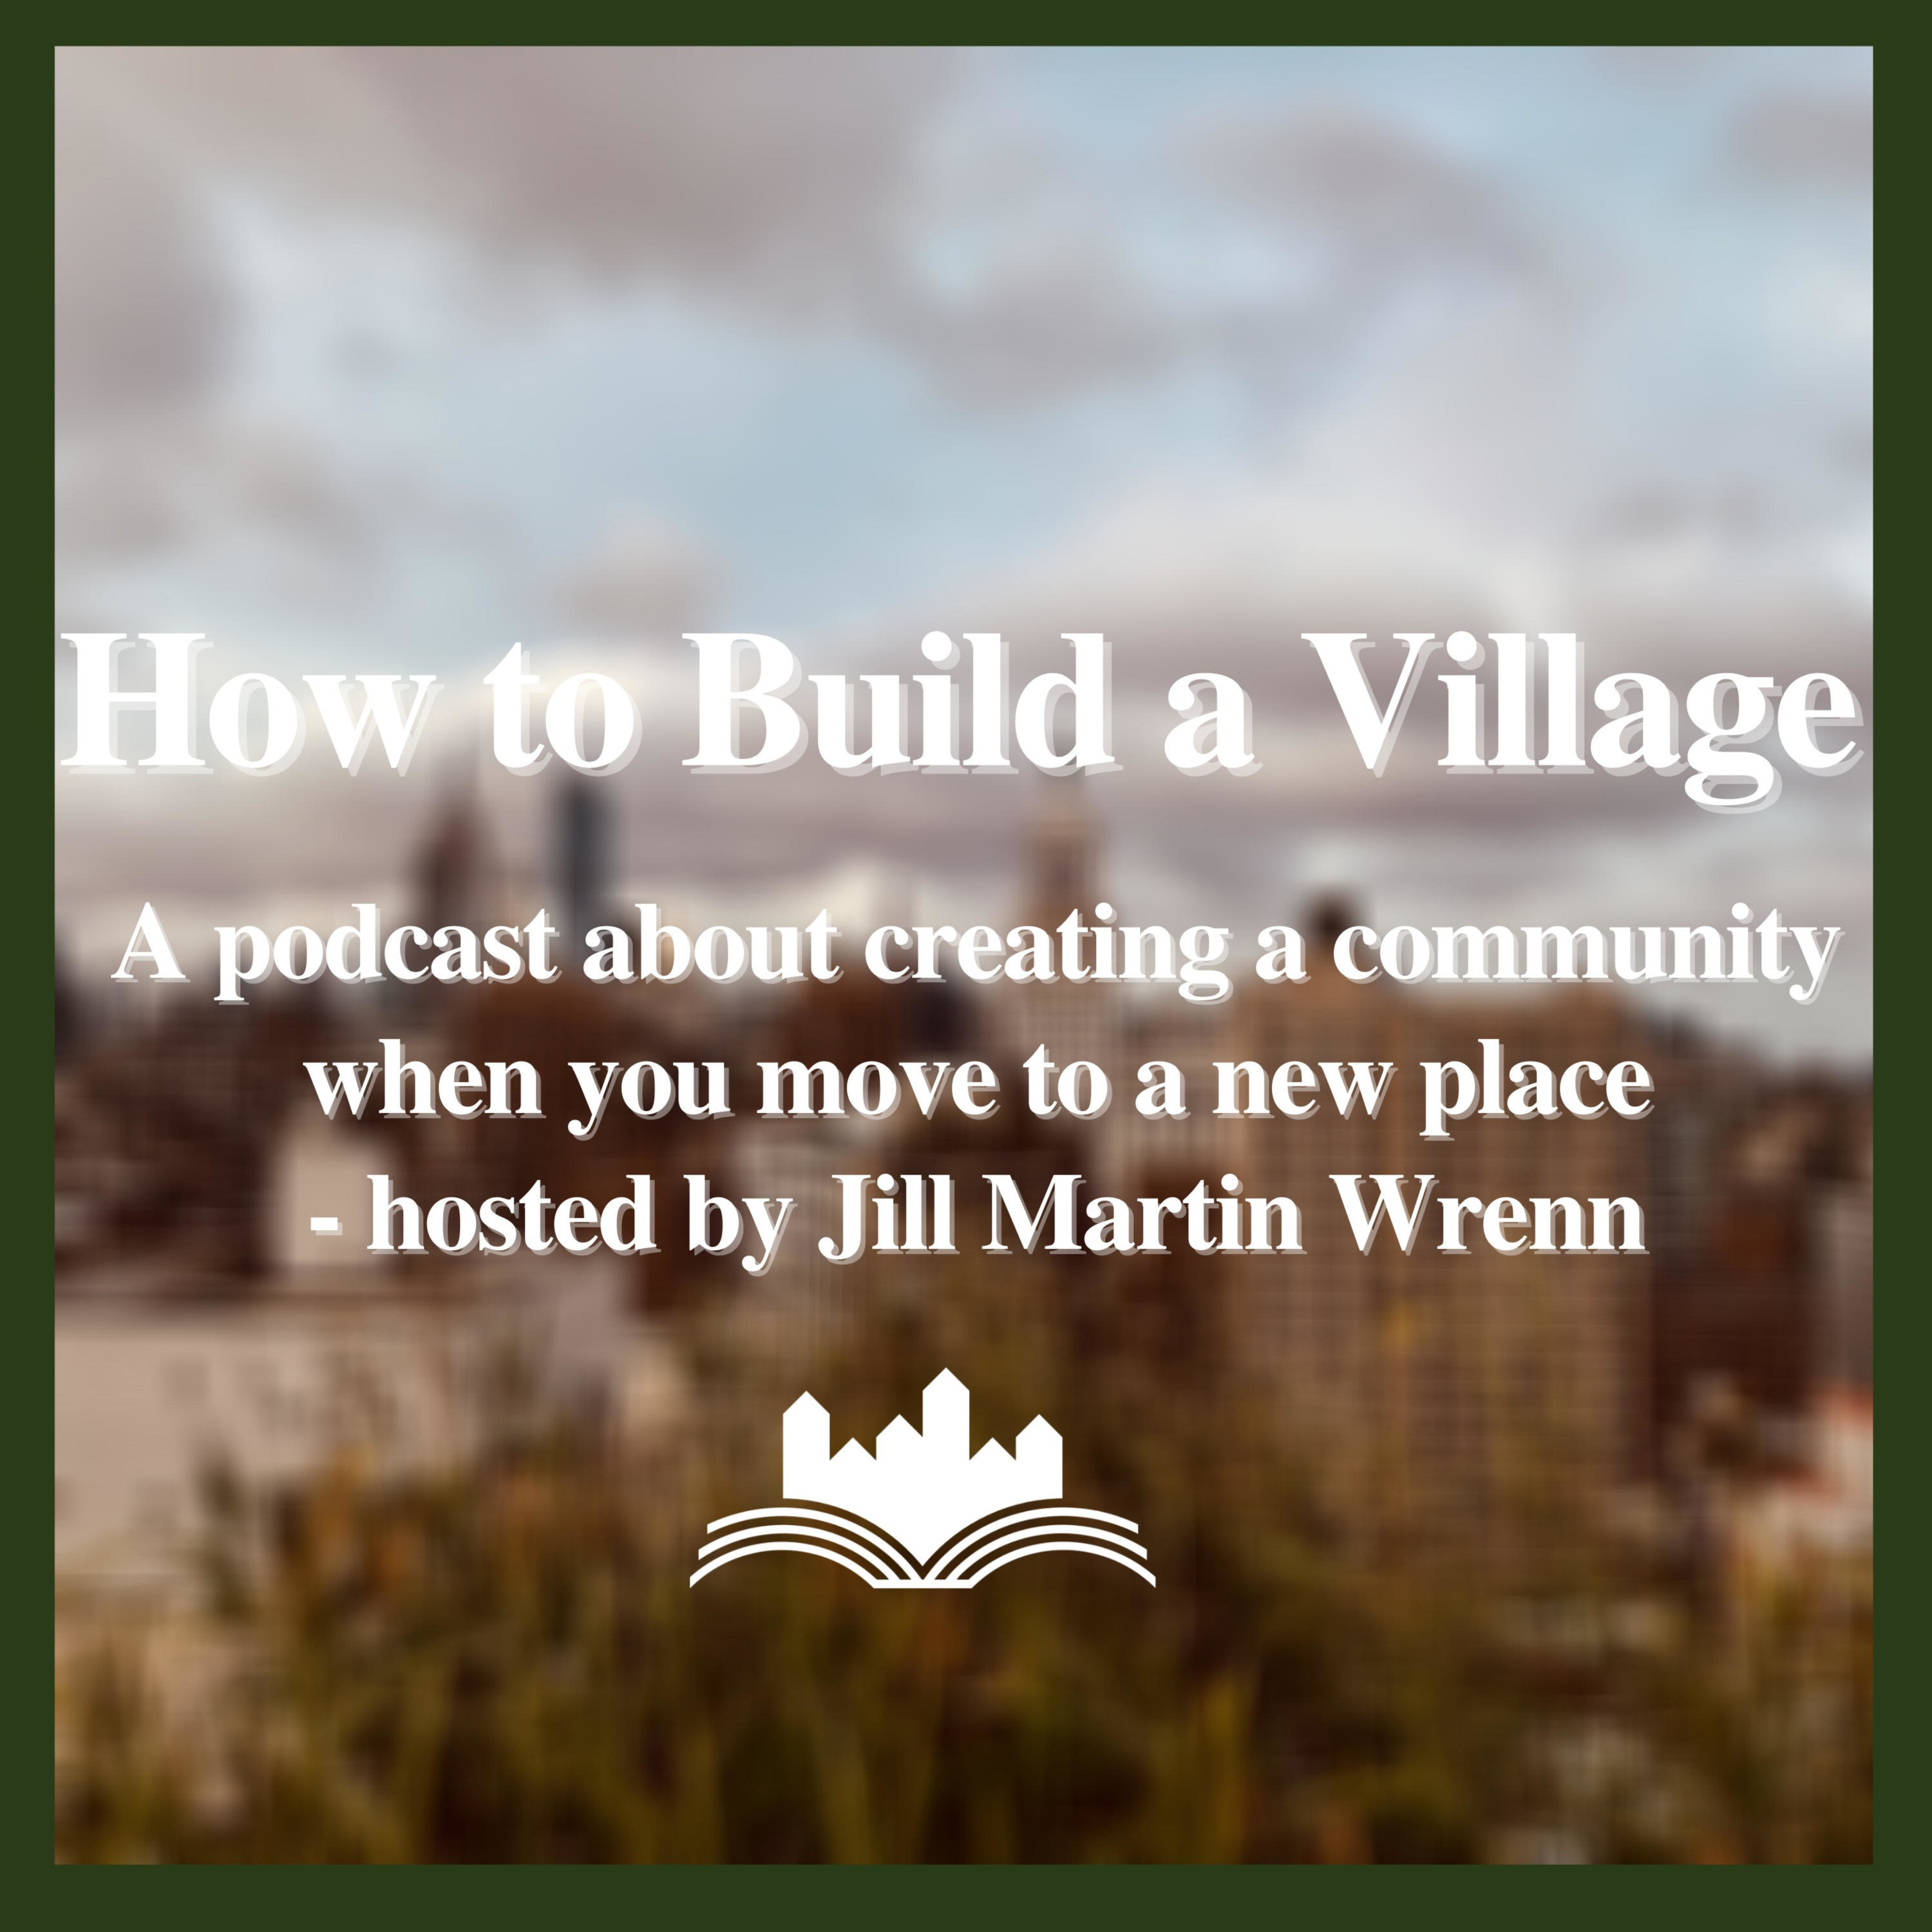 How to Build a Village